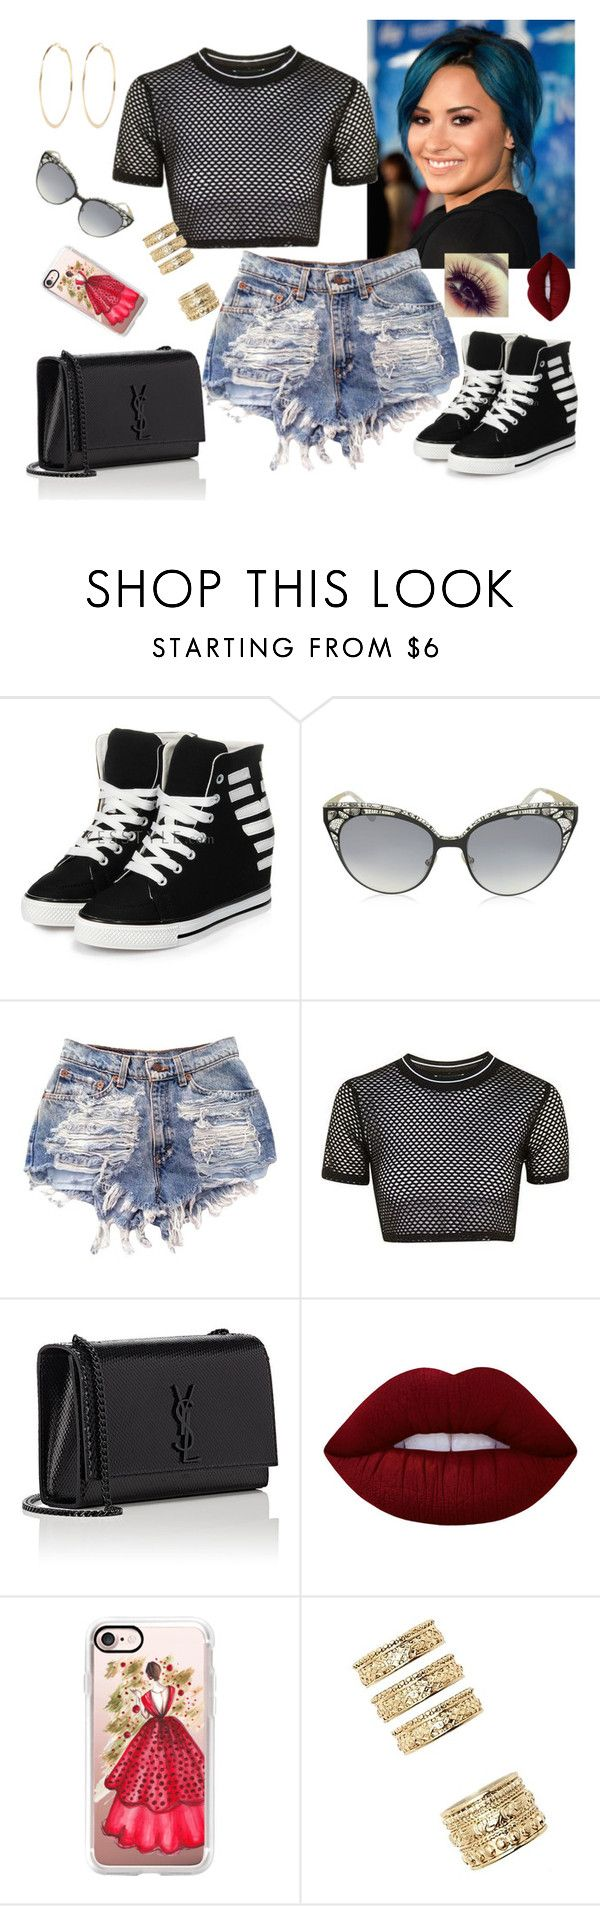 """Shopping with sister"" by anaritaferreira on Polyvore featuring moda, yeswalker, Jimmy Choo, Topshop, Yves Saint Laurent, Lime Crime, Casetify, Forever 21 e River Island"